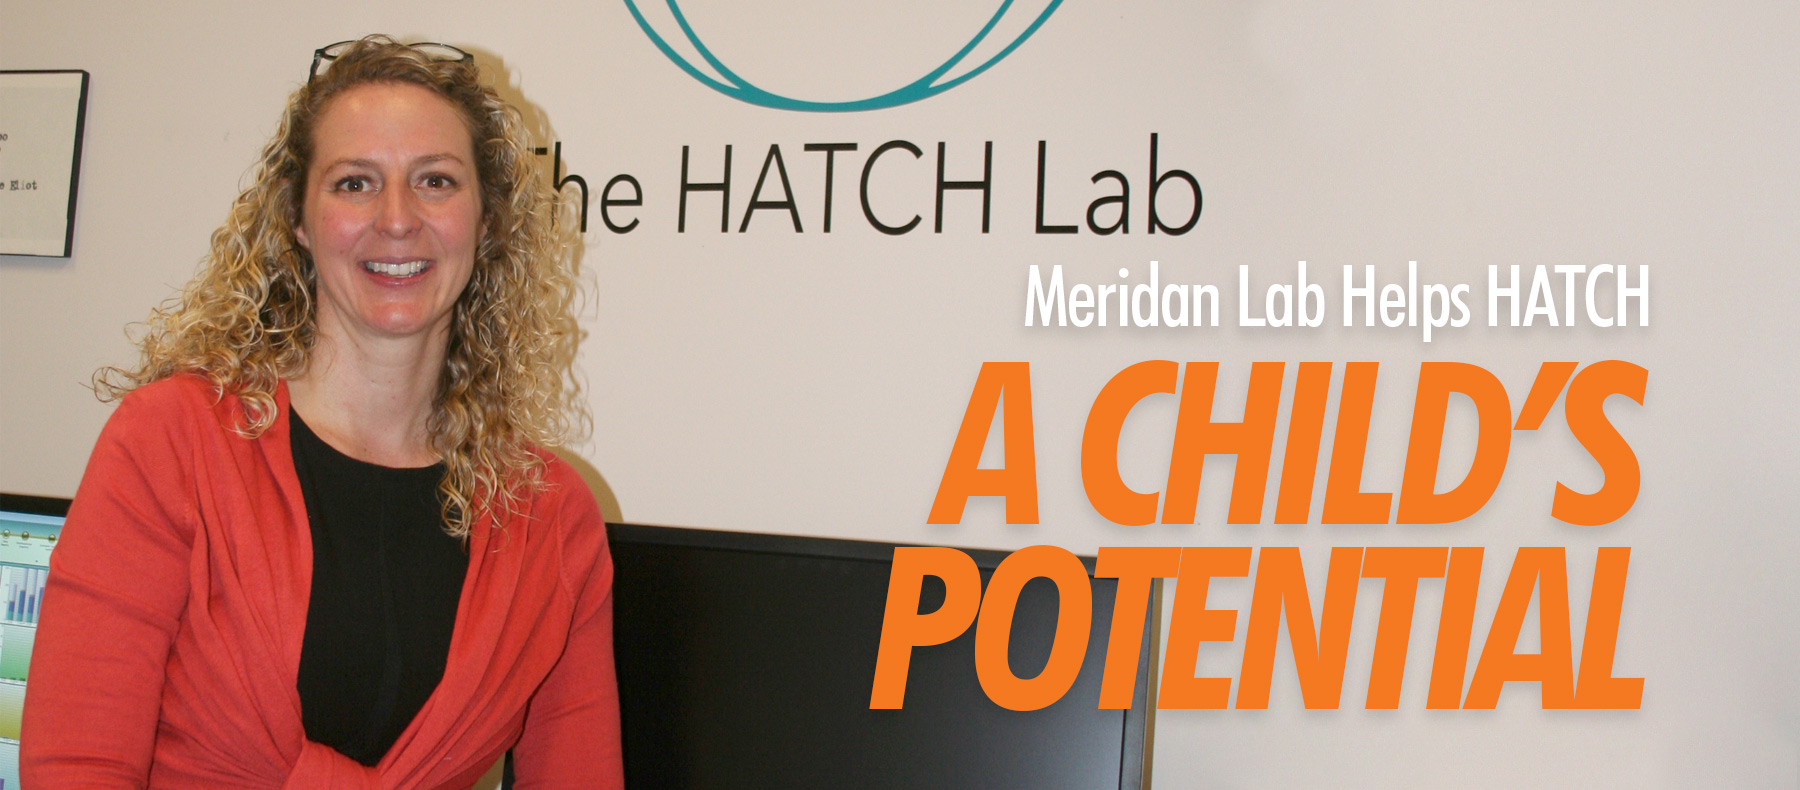 Meridan Lab Helps HATCH a Child's Potential | Idaho State University